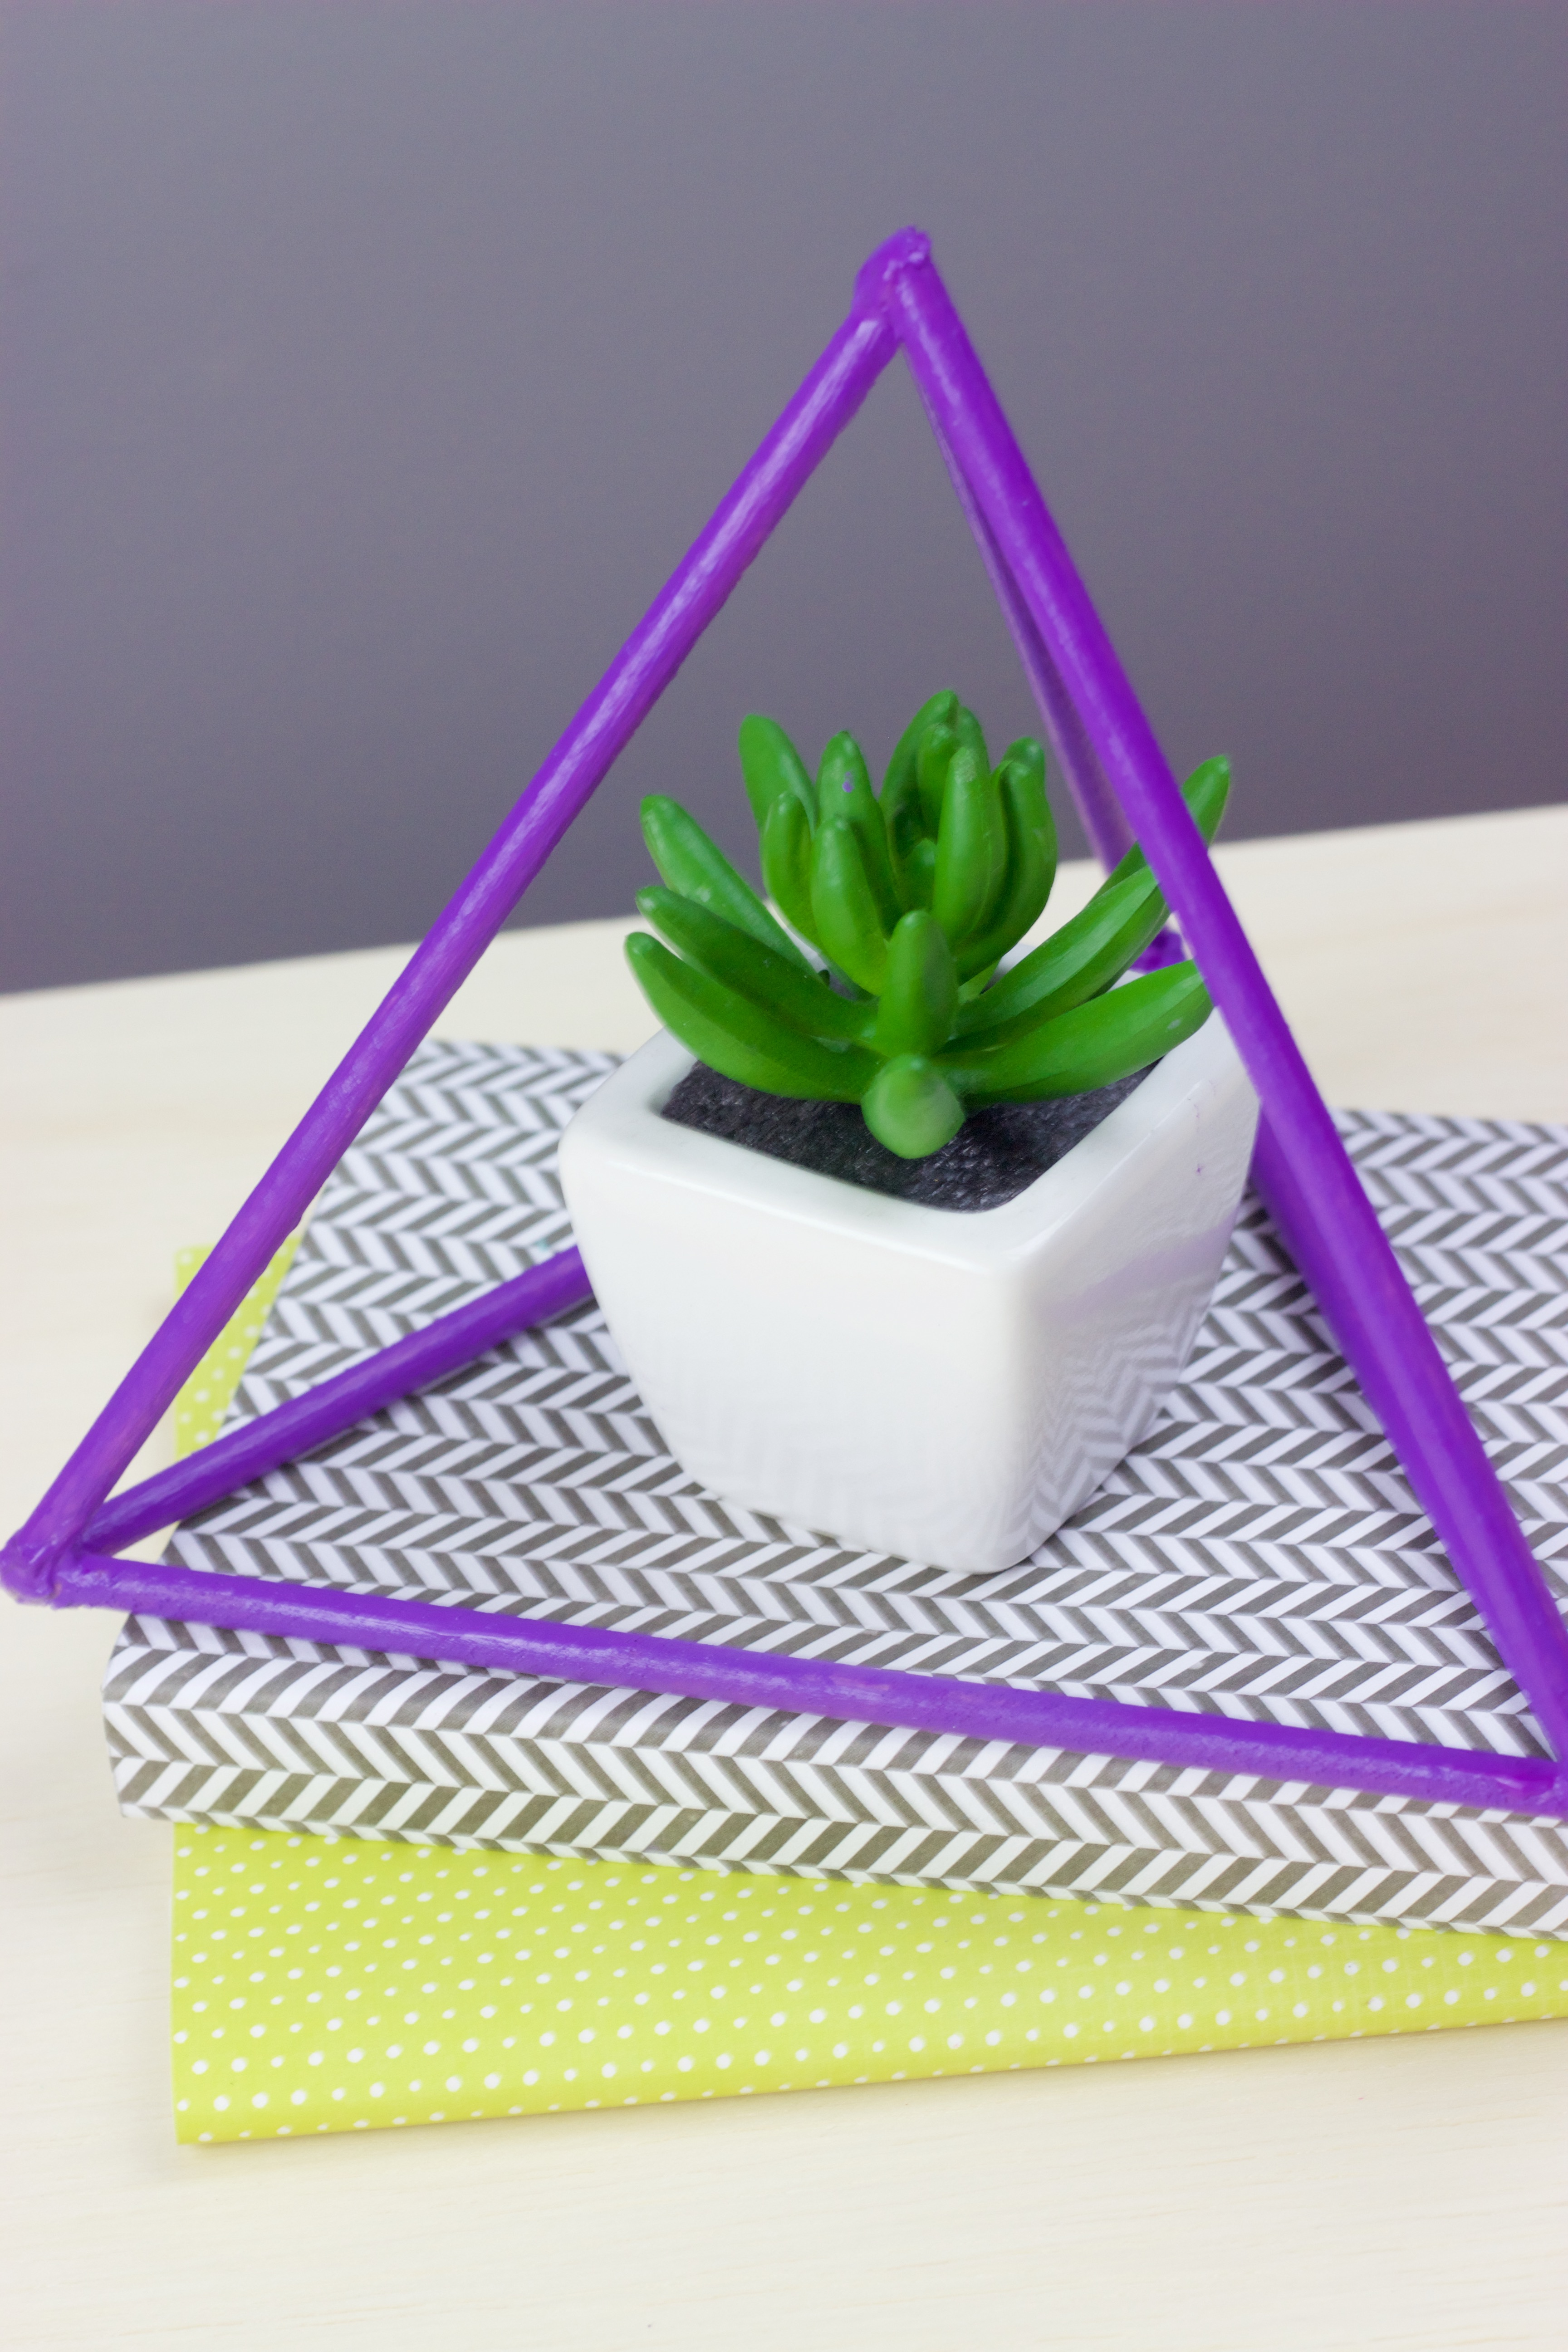 DIY 3D Geometric Shapes - A Little Craft In Your Day